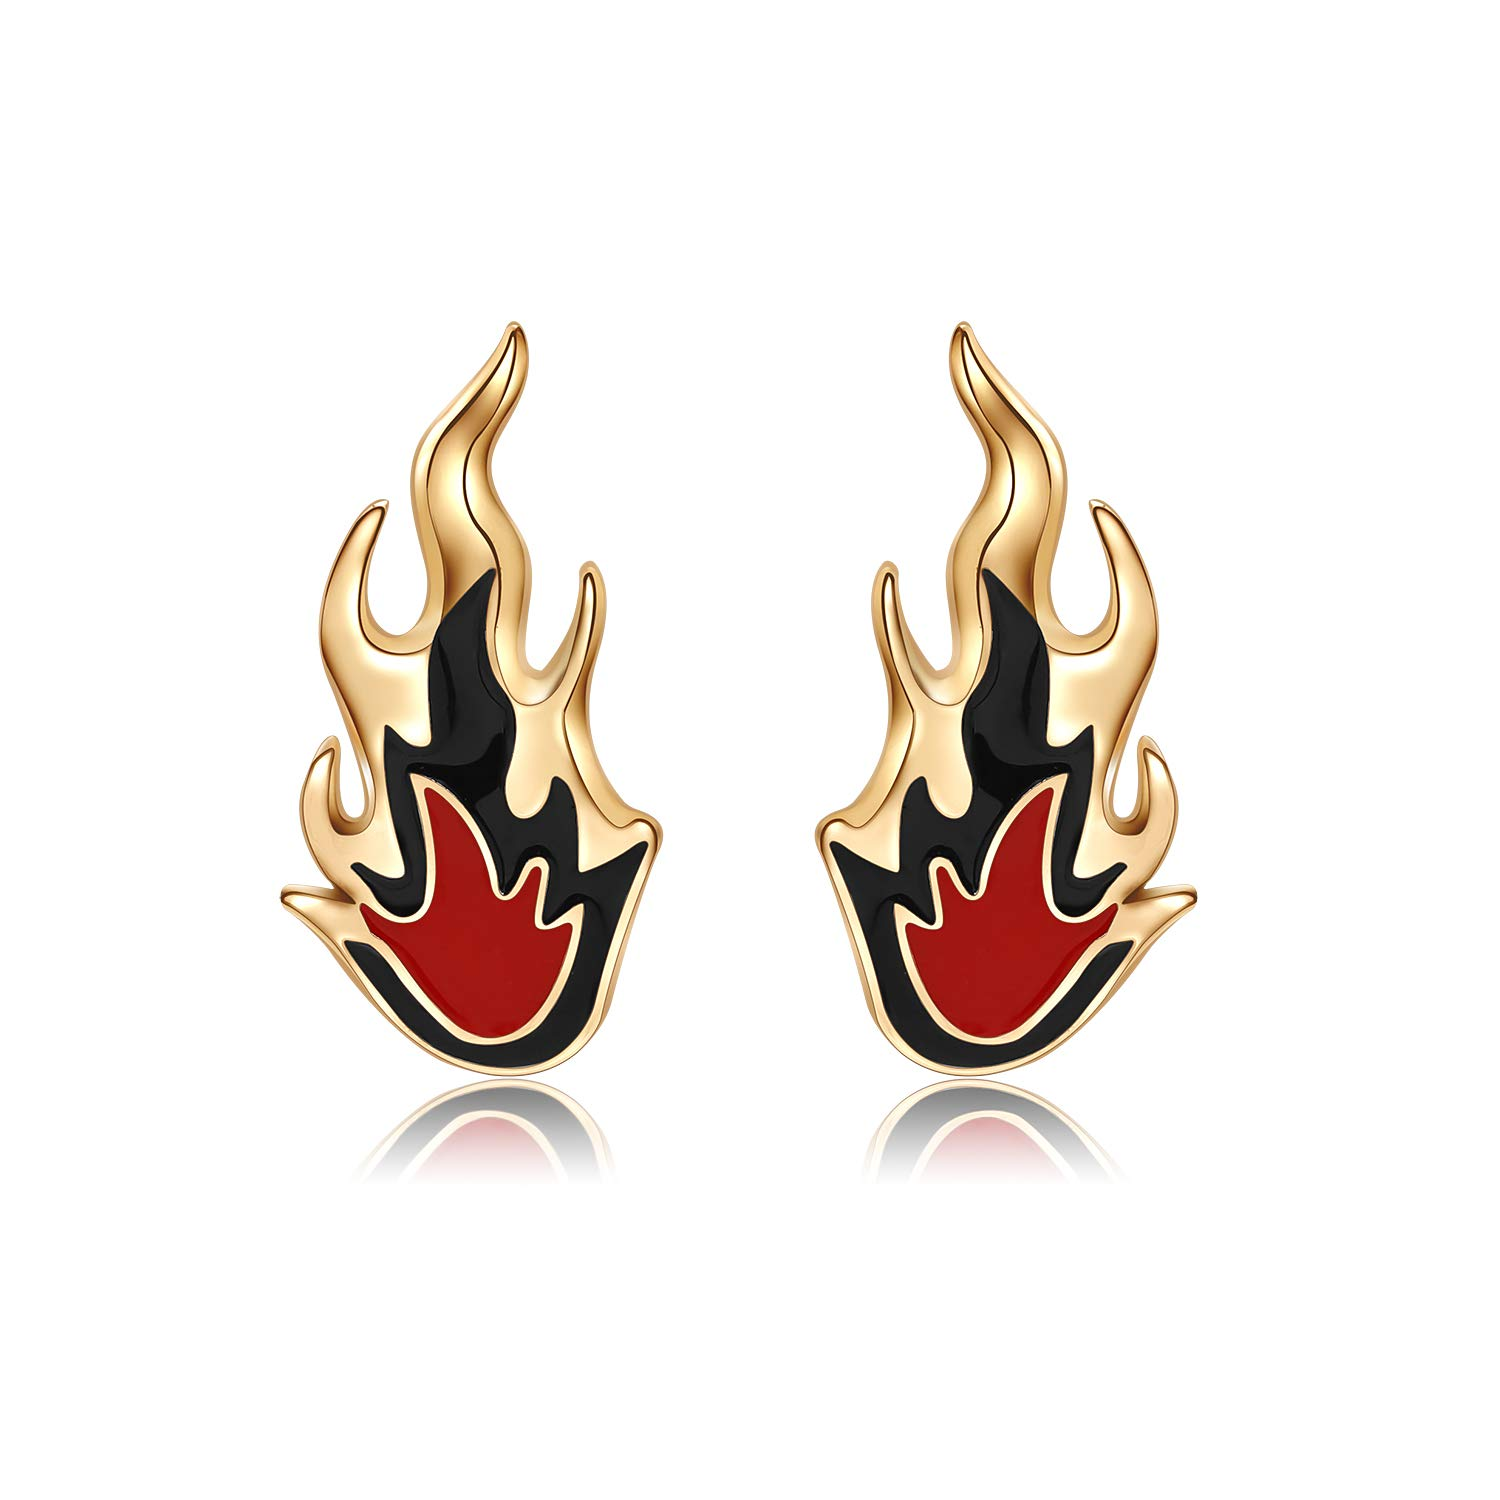 KANGYUAN Unique Cool Style Gold Color Red Shiny Fire Flame Shape Stud Earrings Fashion Jewelry For Women Man Christmas Gifts